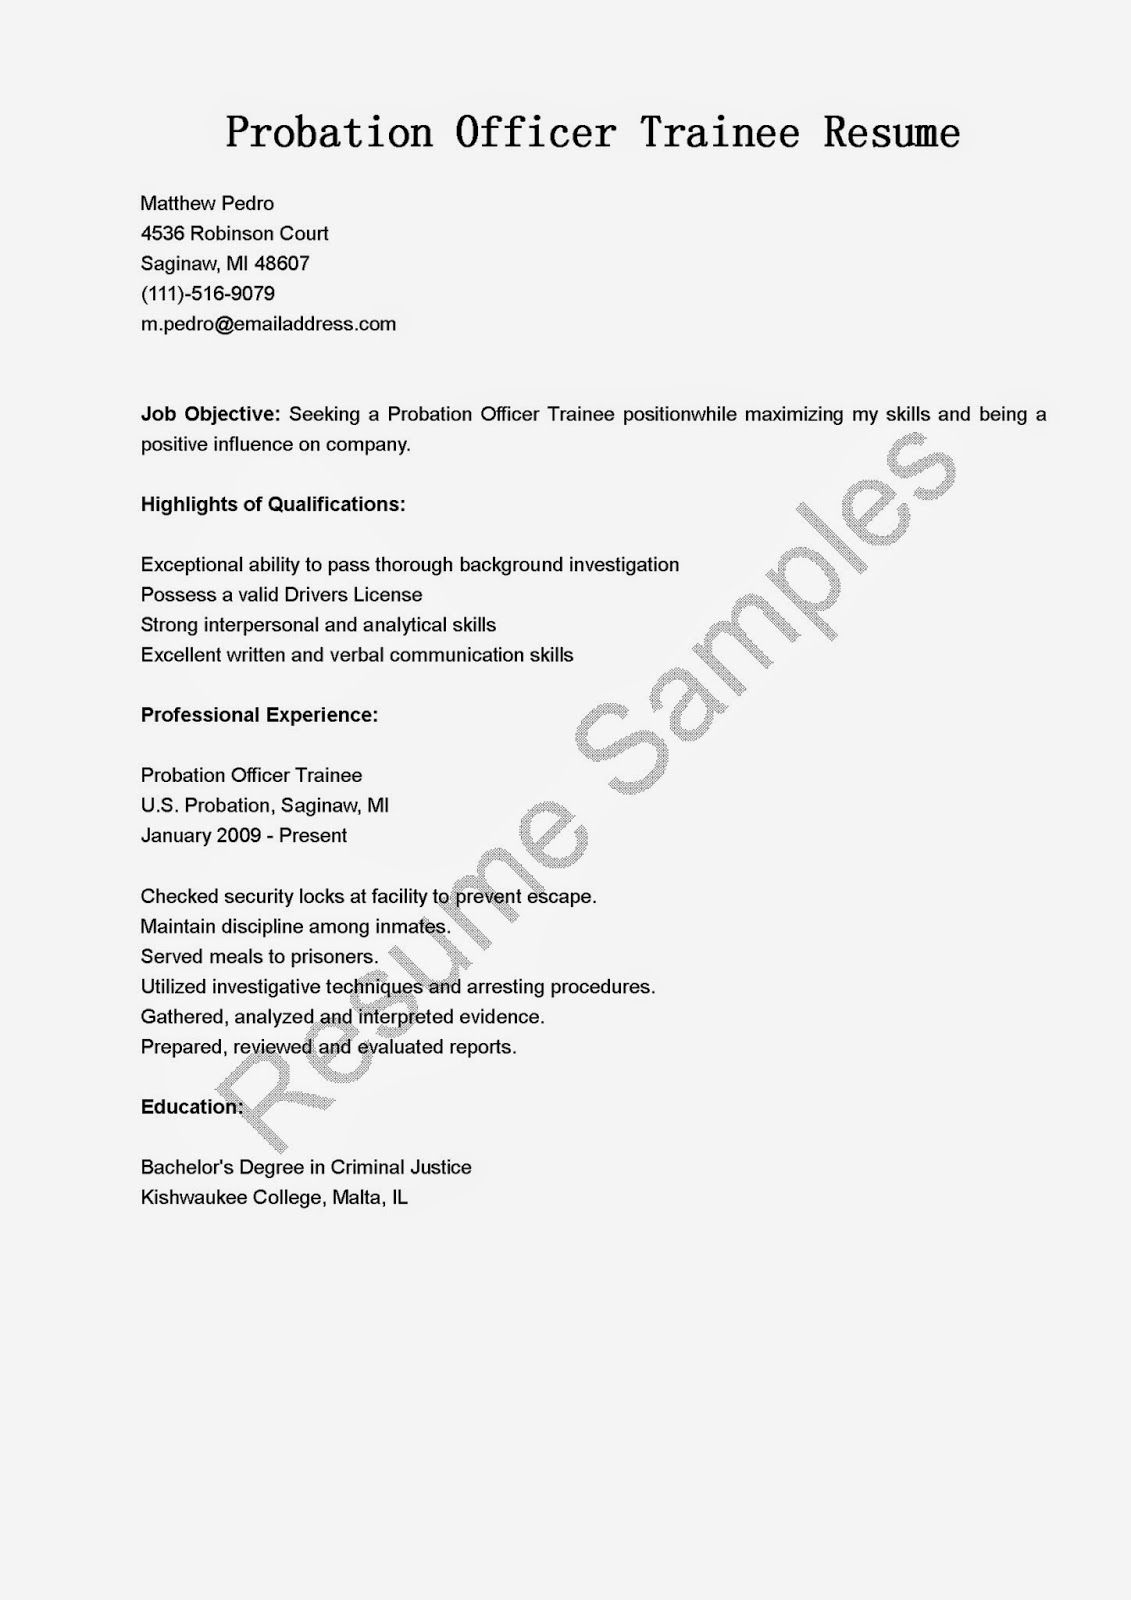 Probation Officer Trainee Resume Sample